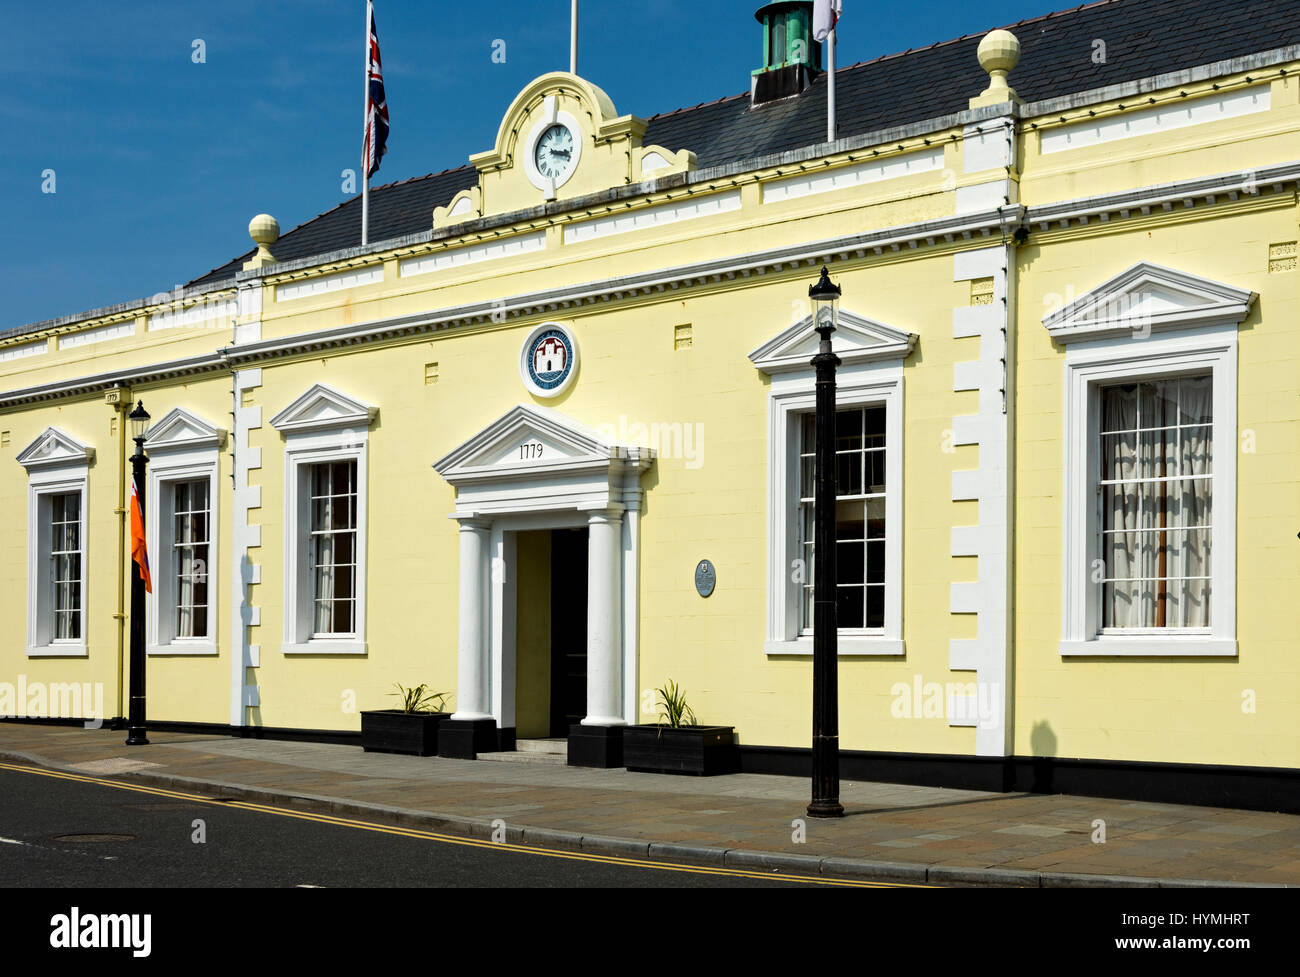 The Town Hall, built 1779, originally the courthouse and gaol, Carrickfergus, County Antrim, Northern Ireland, UK - Stock Image